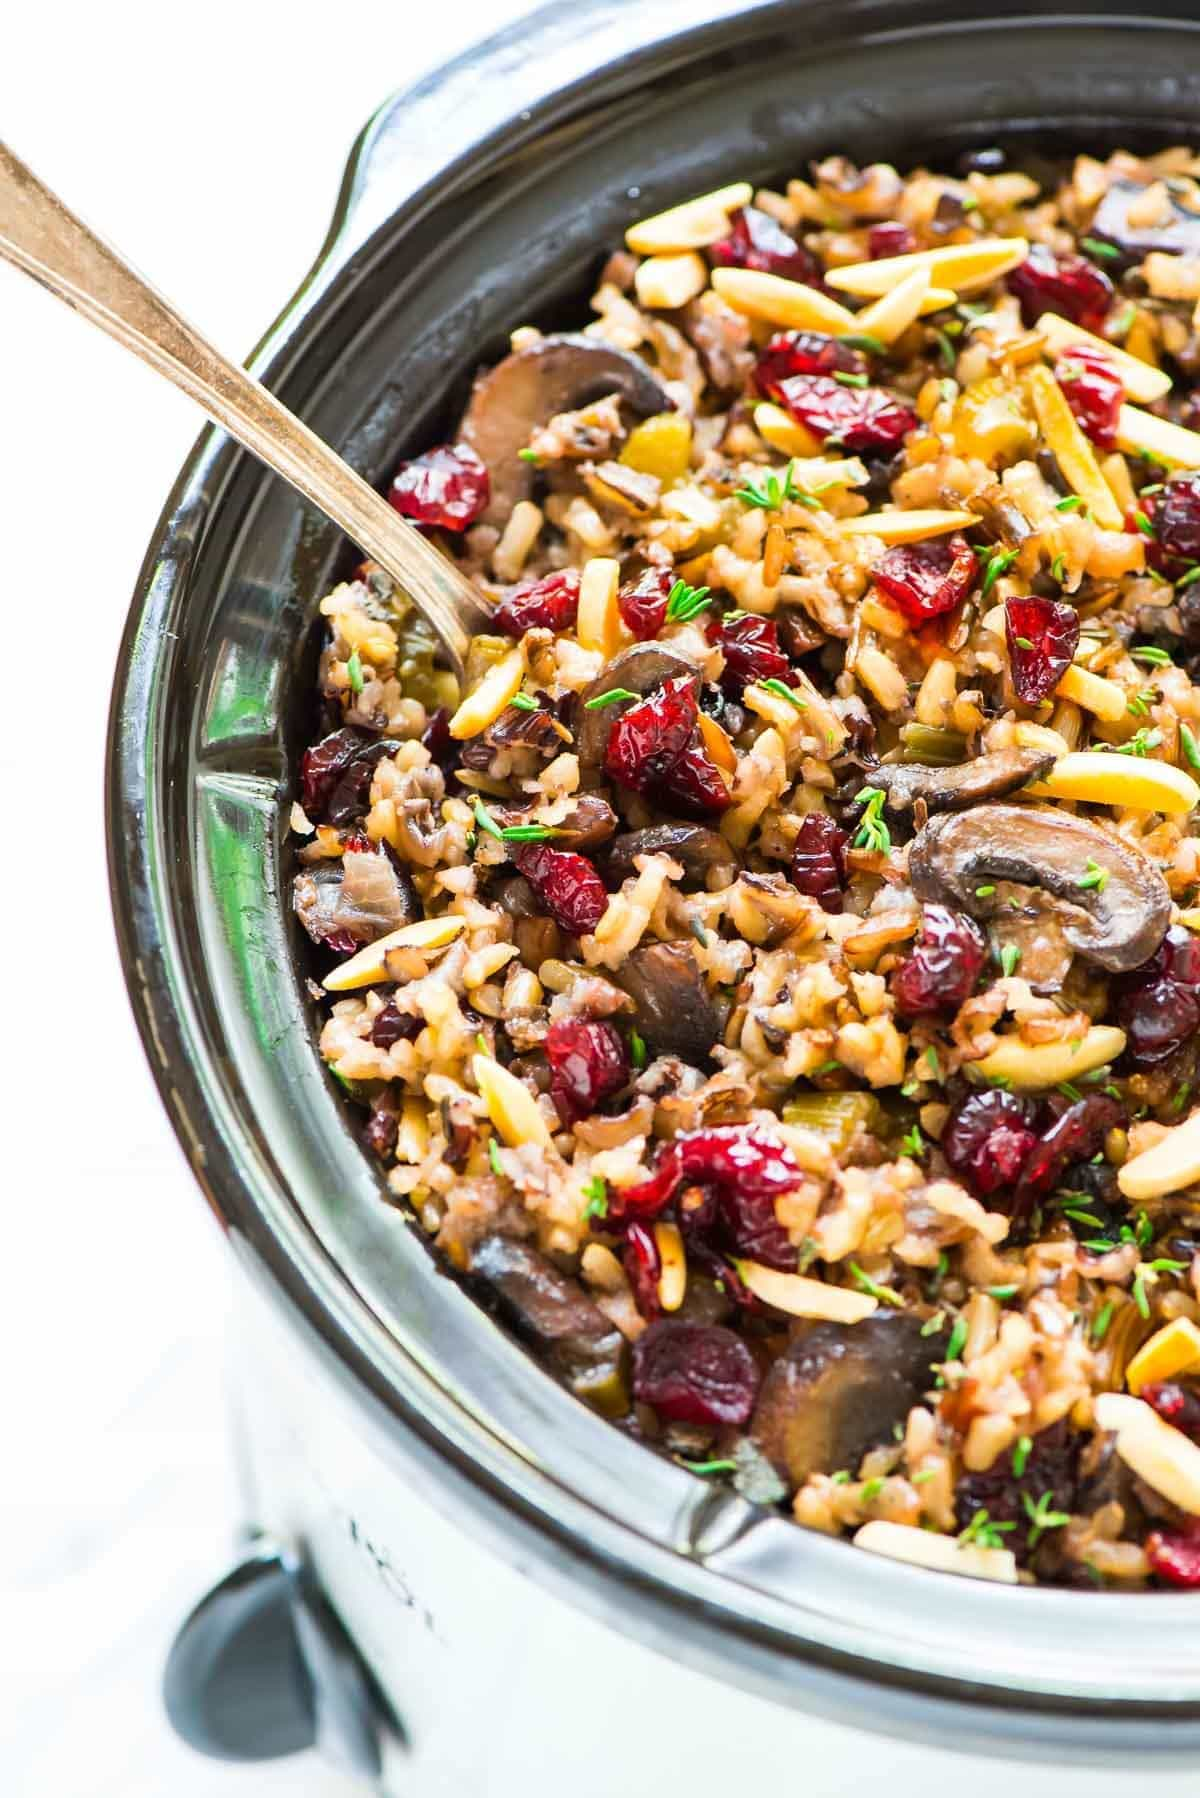 Wild rice stuffing in a slow cooker